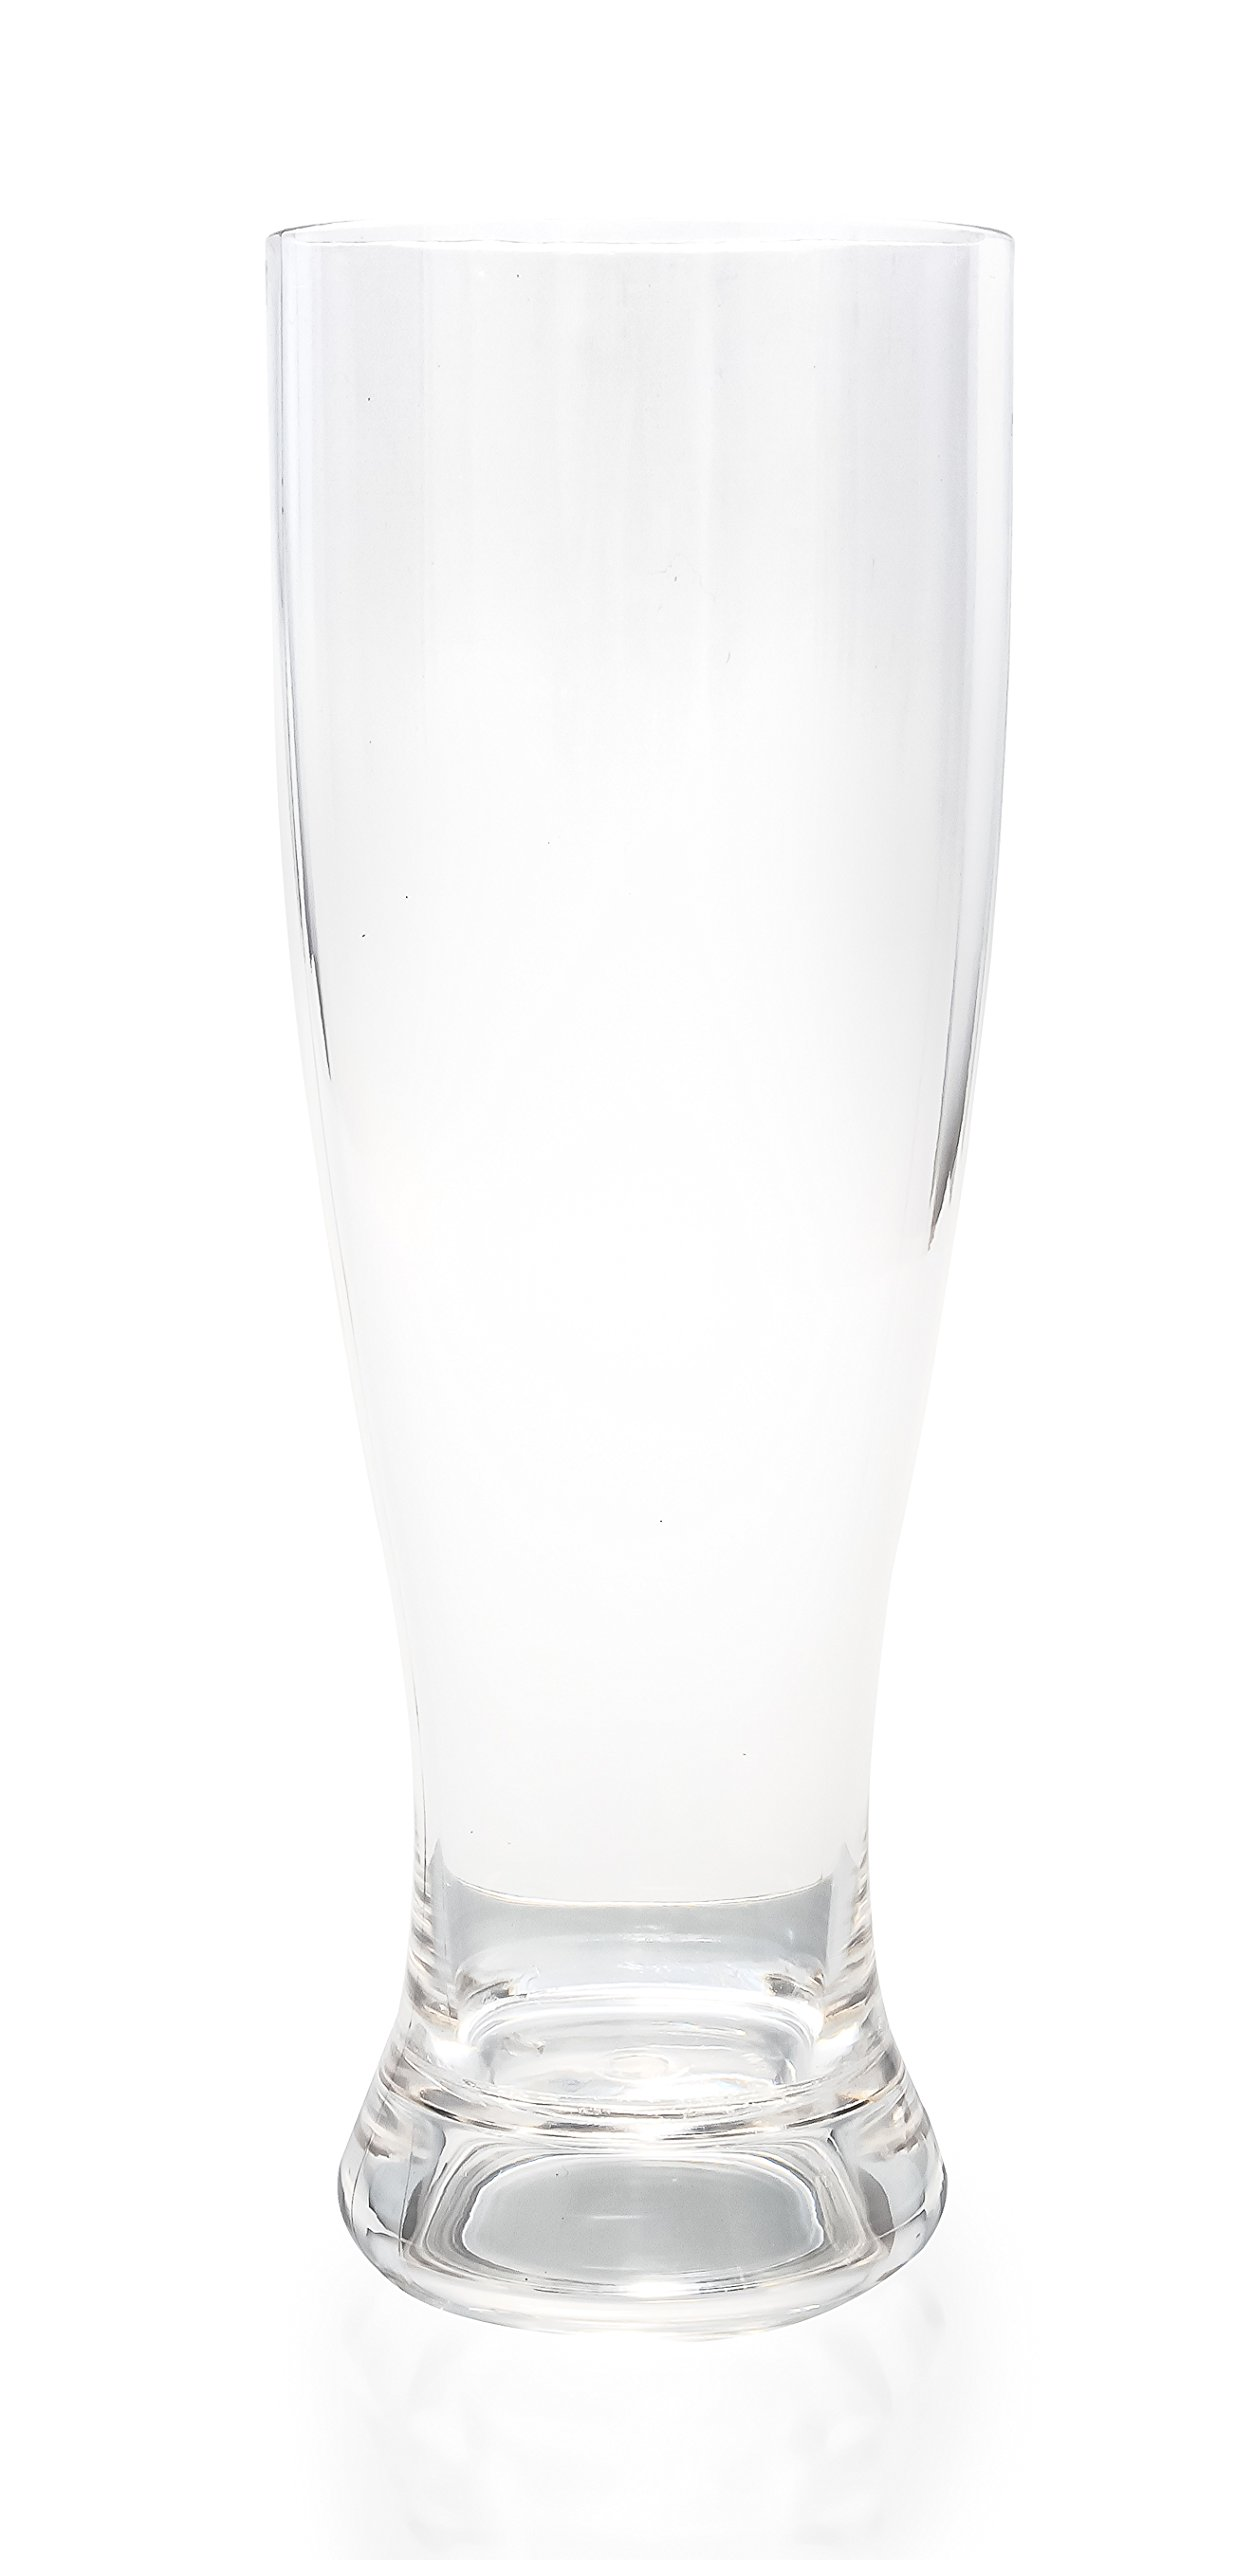 Camco Unbreakable Travel Plisner Beer Glass- 22 Ounce, Dishwasher Safe, BPA Free,  Perfect For Picnics, Cookouts, and The Beach - Set of 8 (43892)